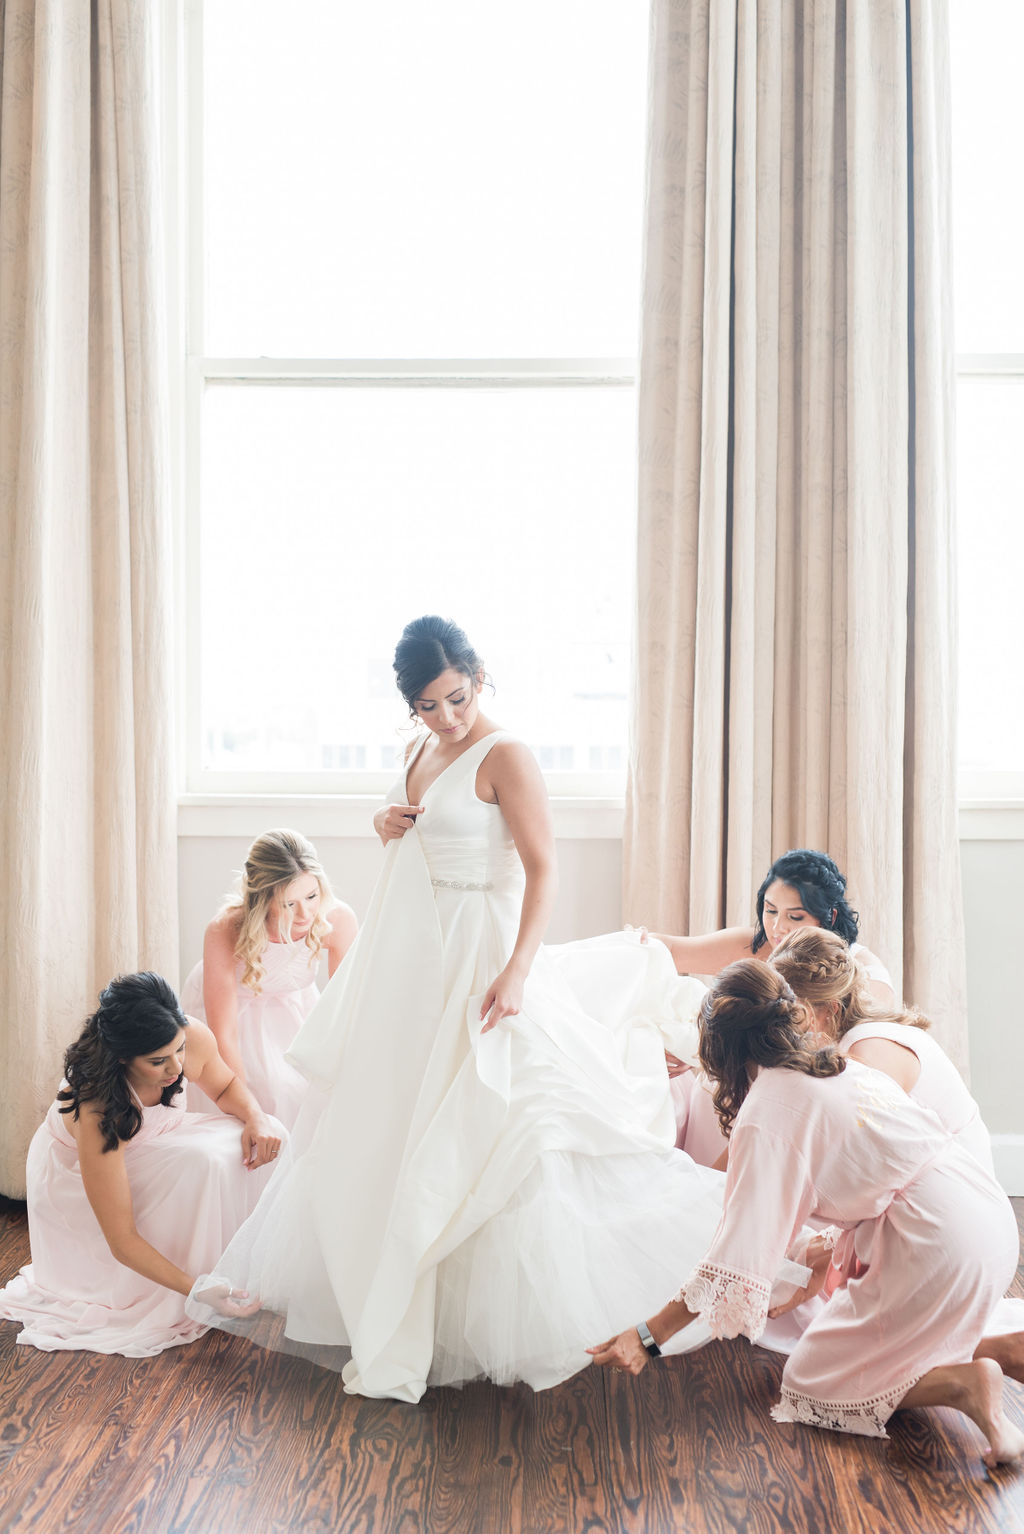 Bridal party photo ideas: Dusty Blue and Blush Wedding at The Room on Main featured on Alexa Kay Events!